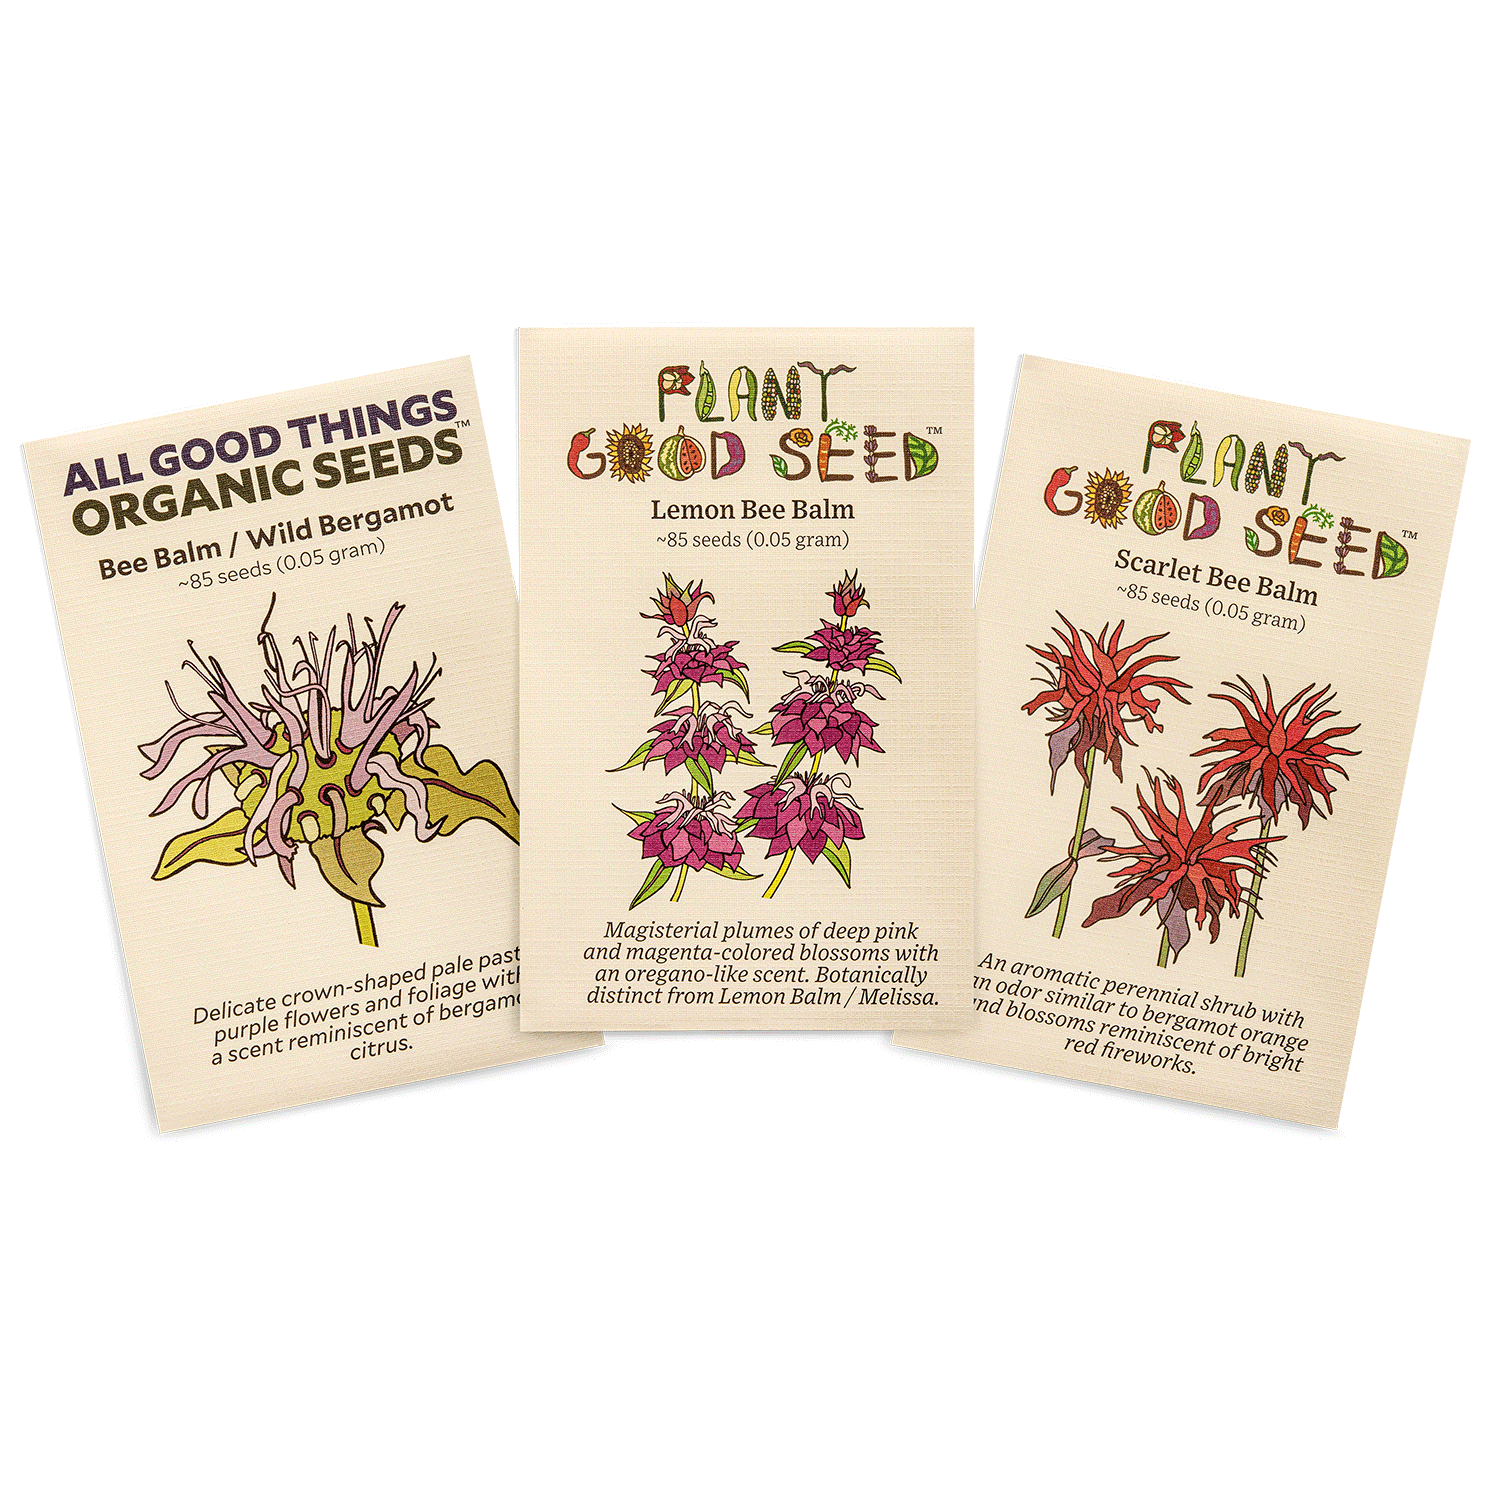 Bee Balm Seed Collection Packets